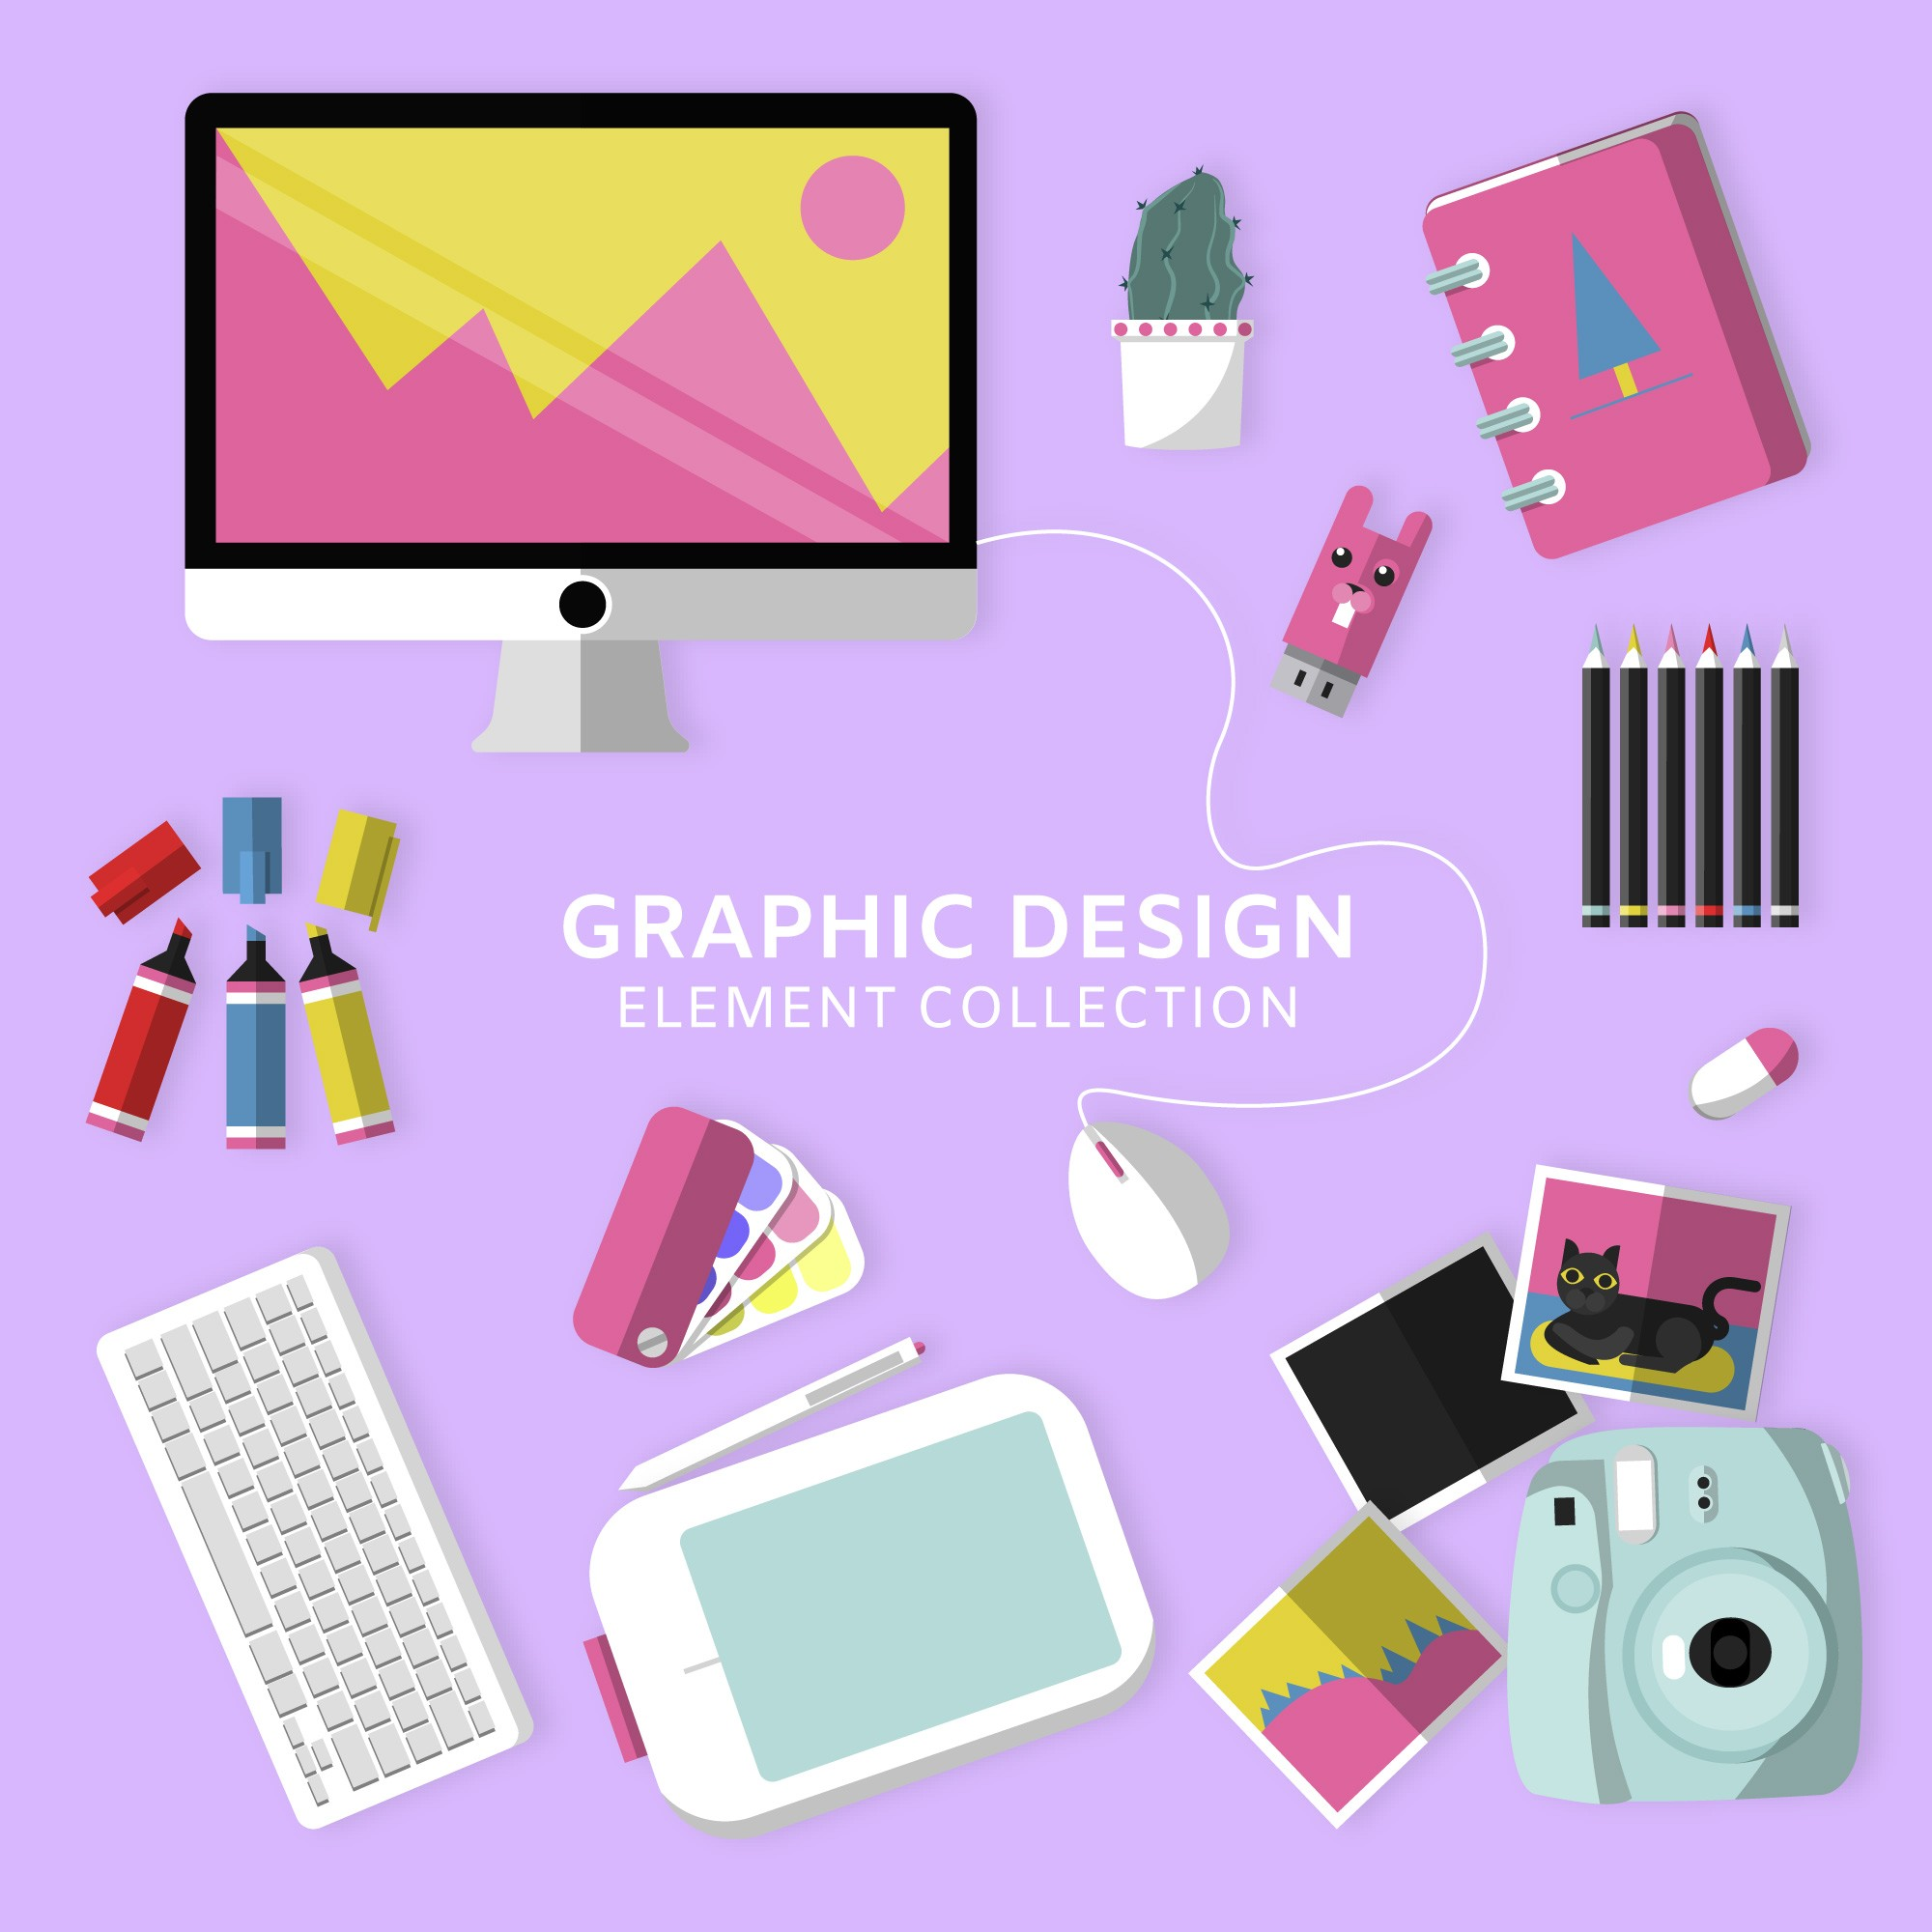 Graphic design elements collection with top view